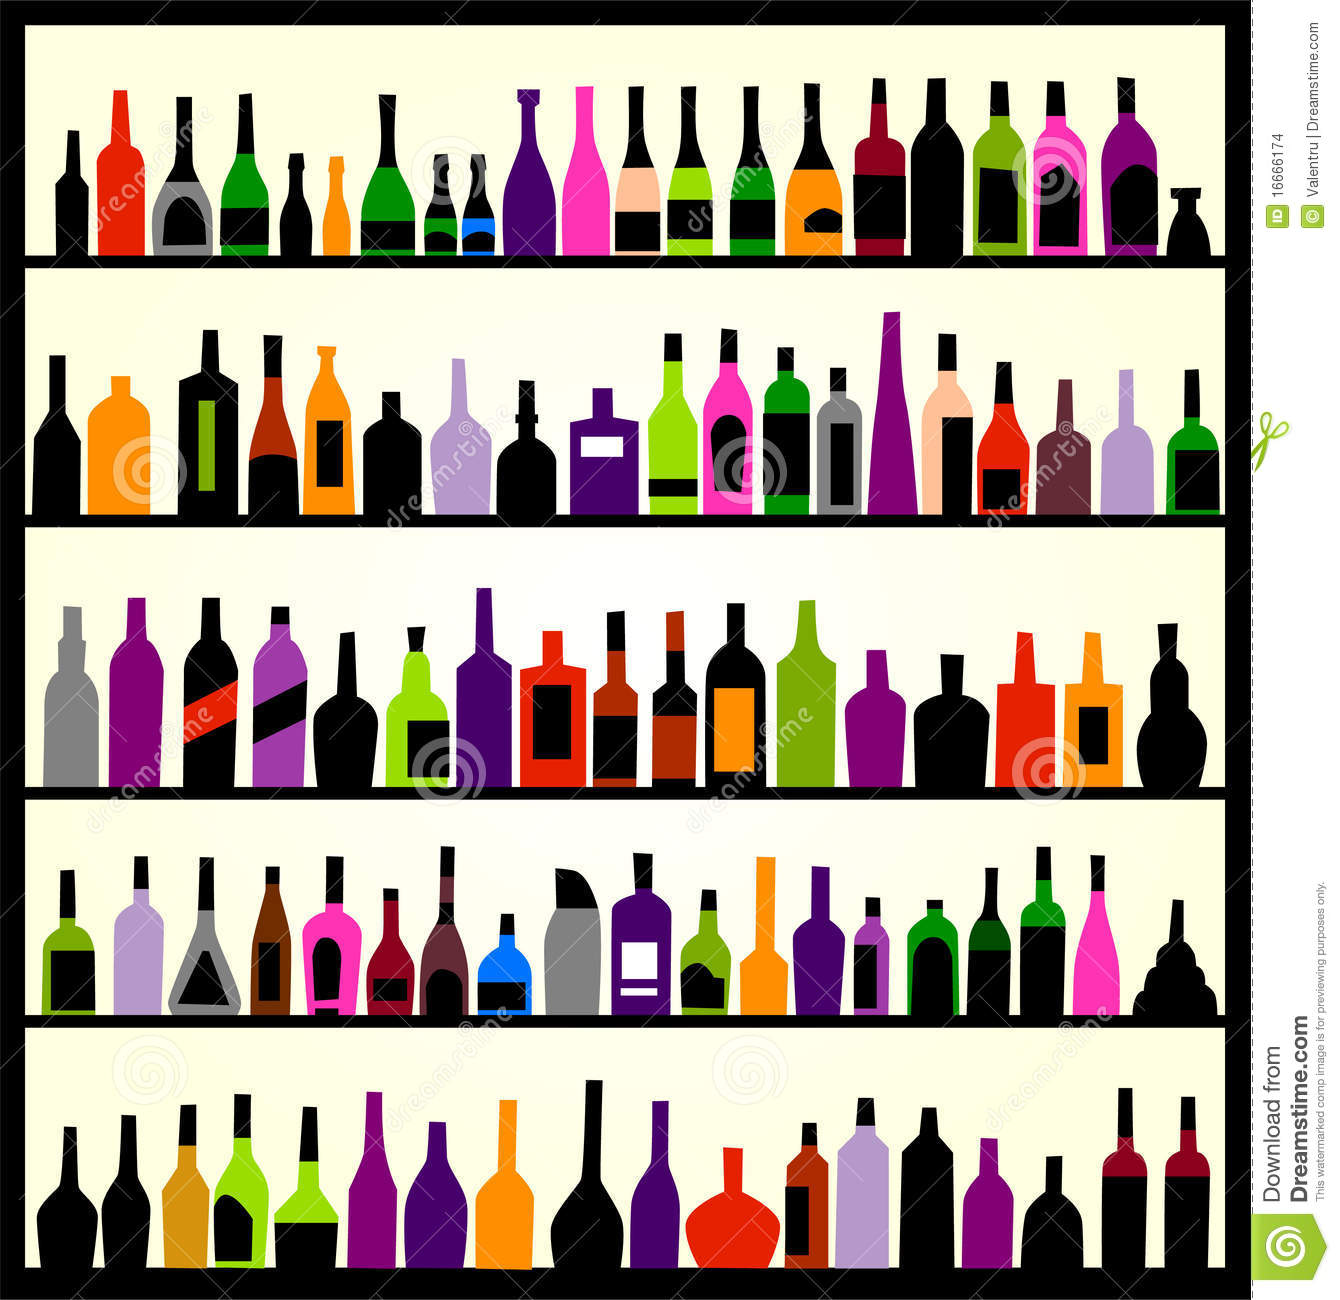 Alcohol Bottles On The Wall Stock Images - Image: 16666174